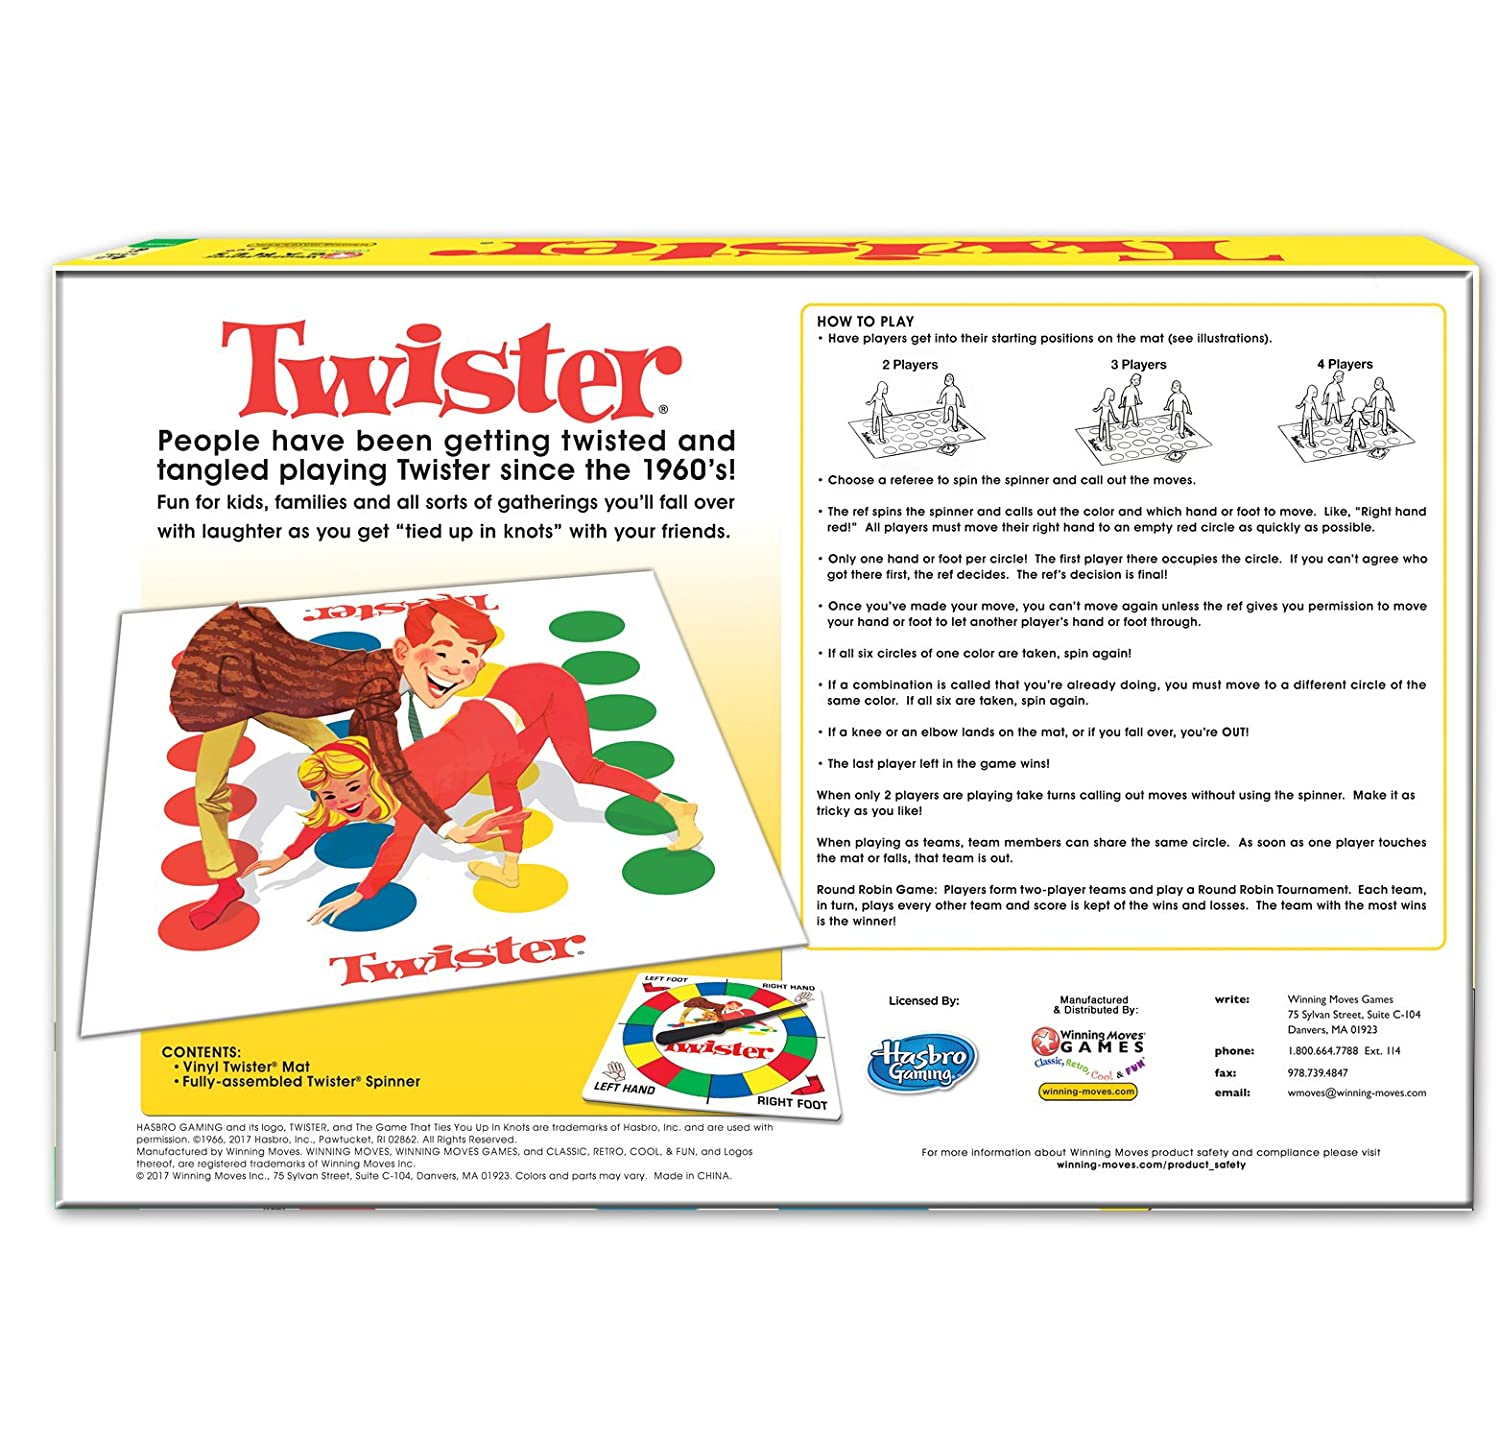 graphic about Twister Spinner Printable titled Profitable Moves Game titles Clic Twister